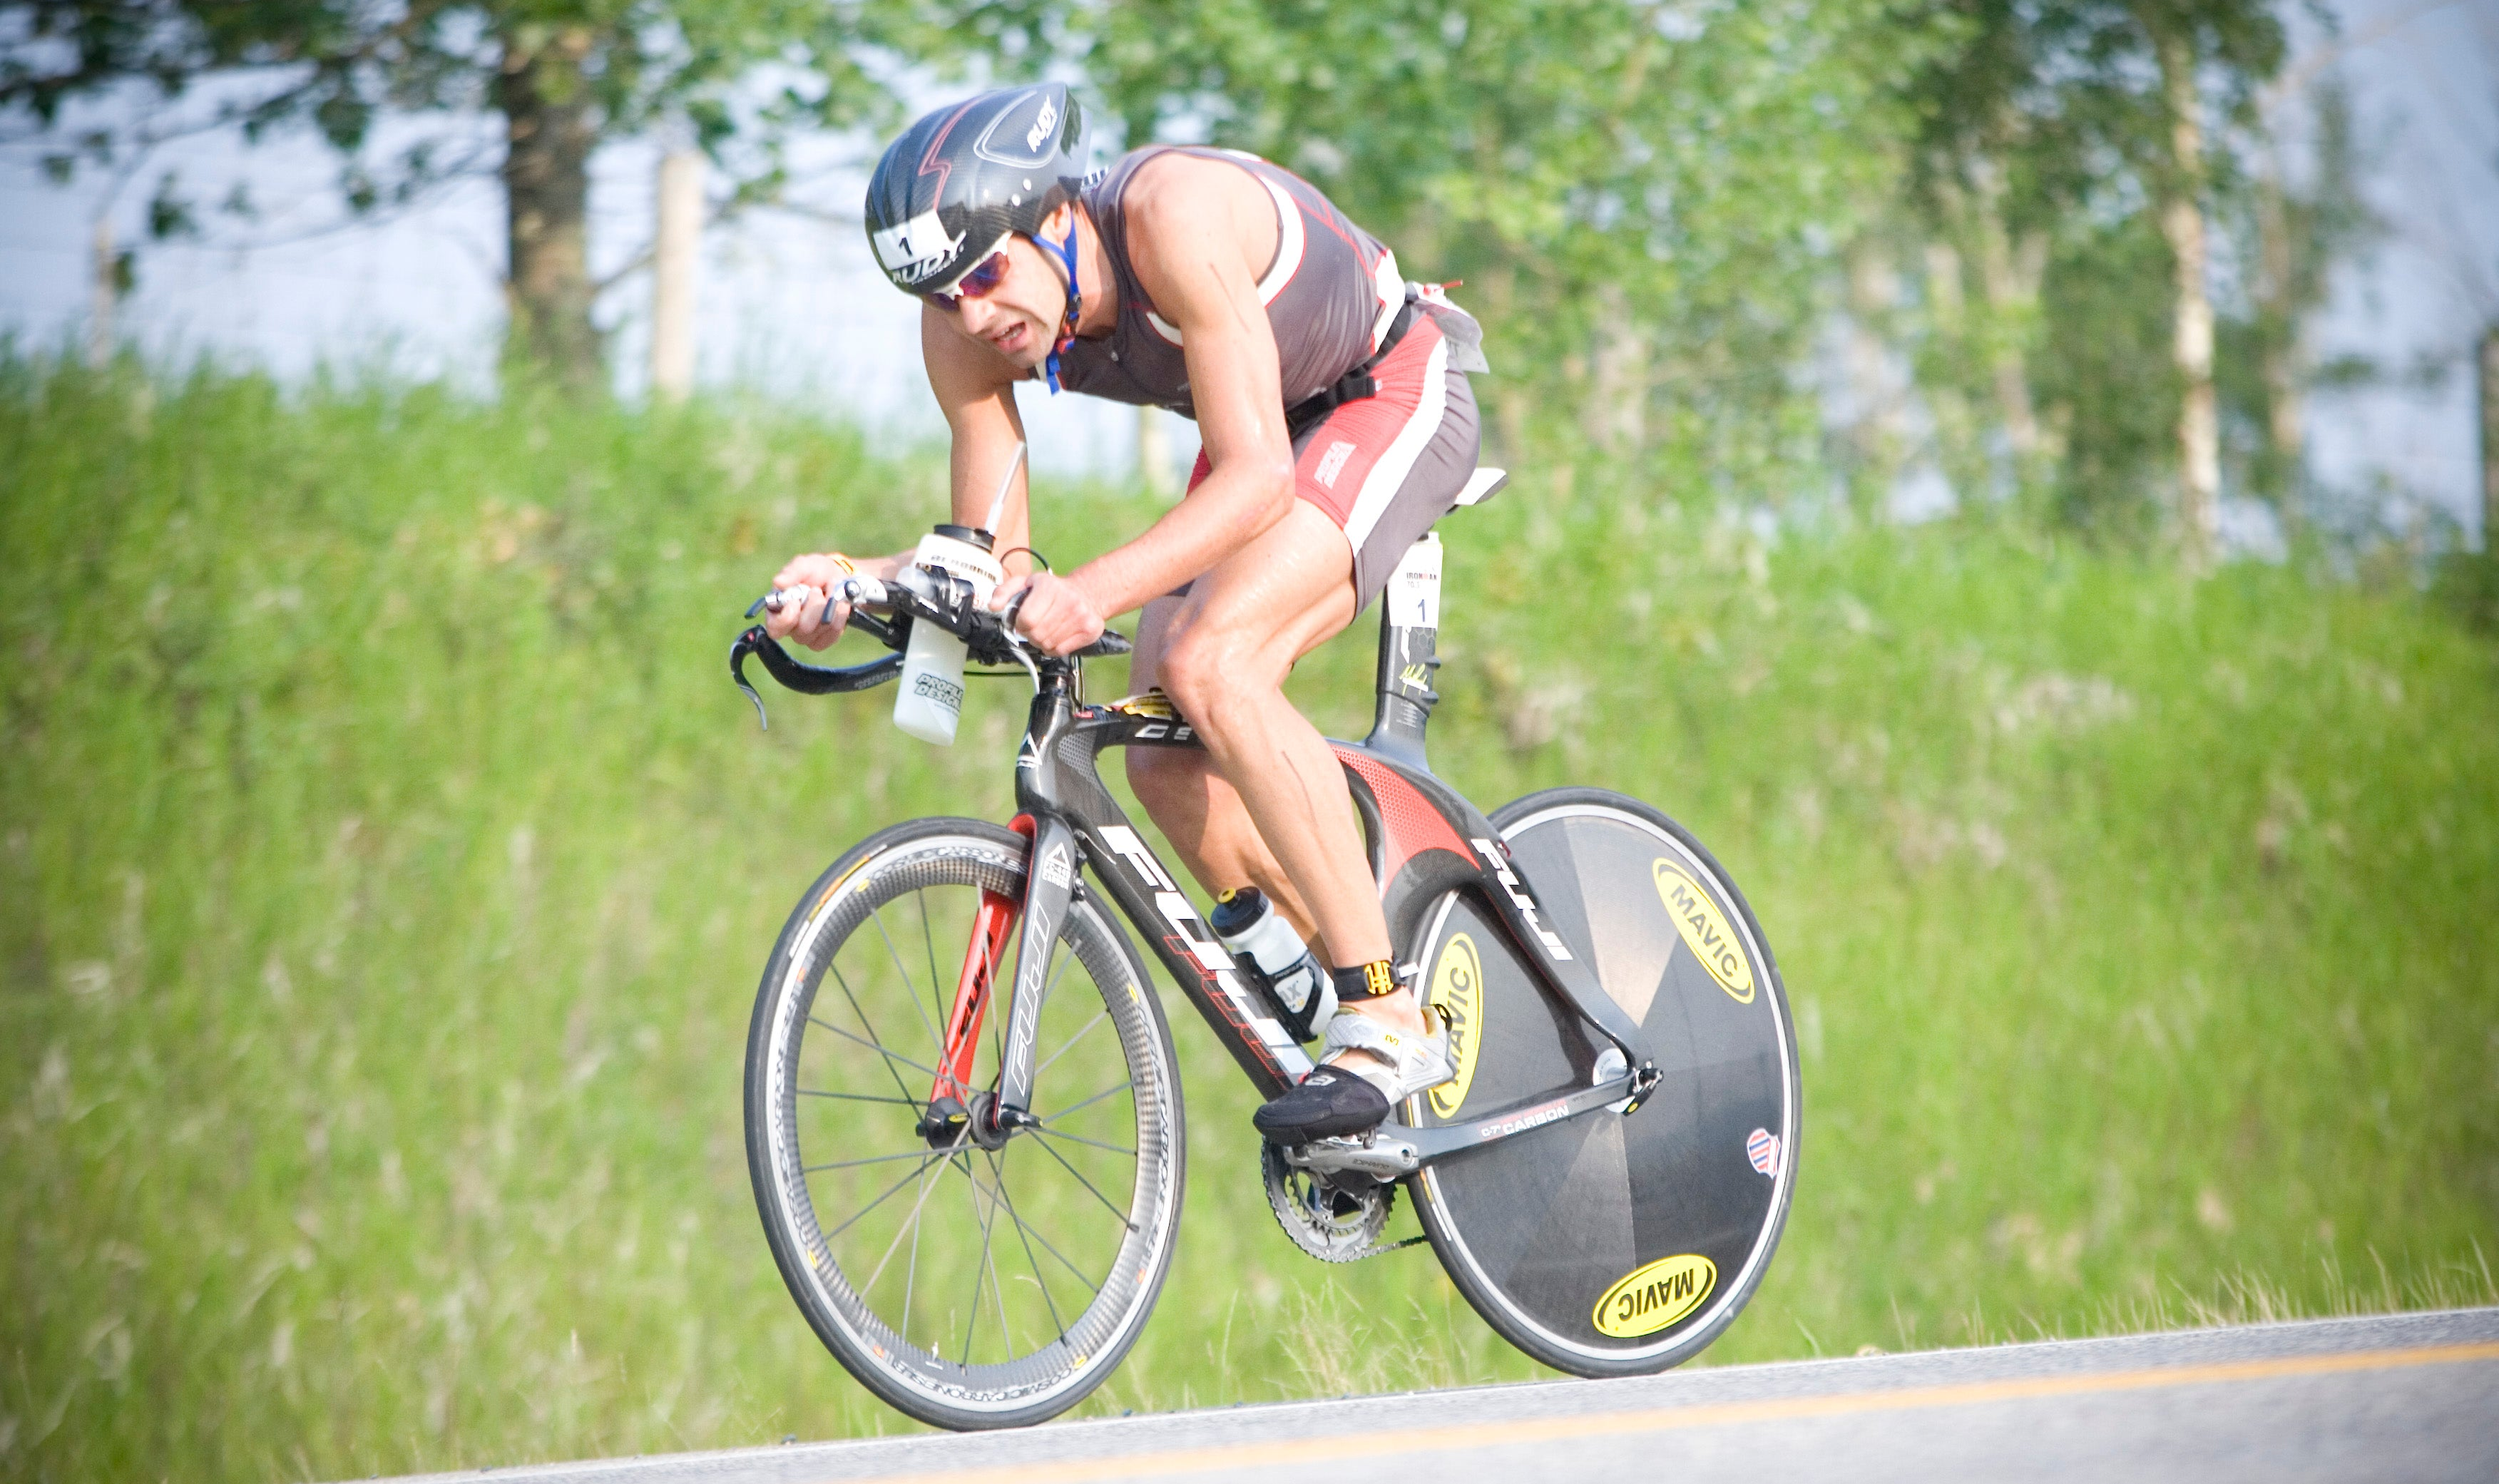 A balanced arsenal of swim, bike and run speed netted O'Donnell his second 70.3 win of the season.